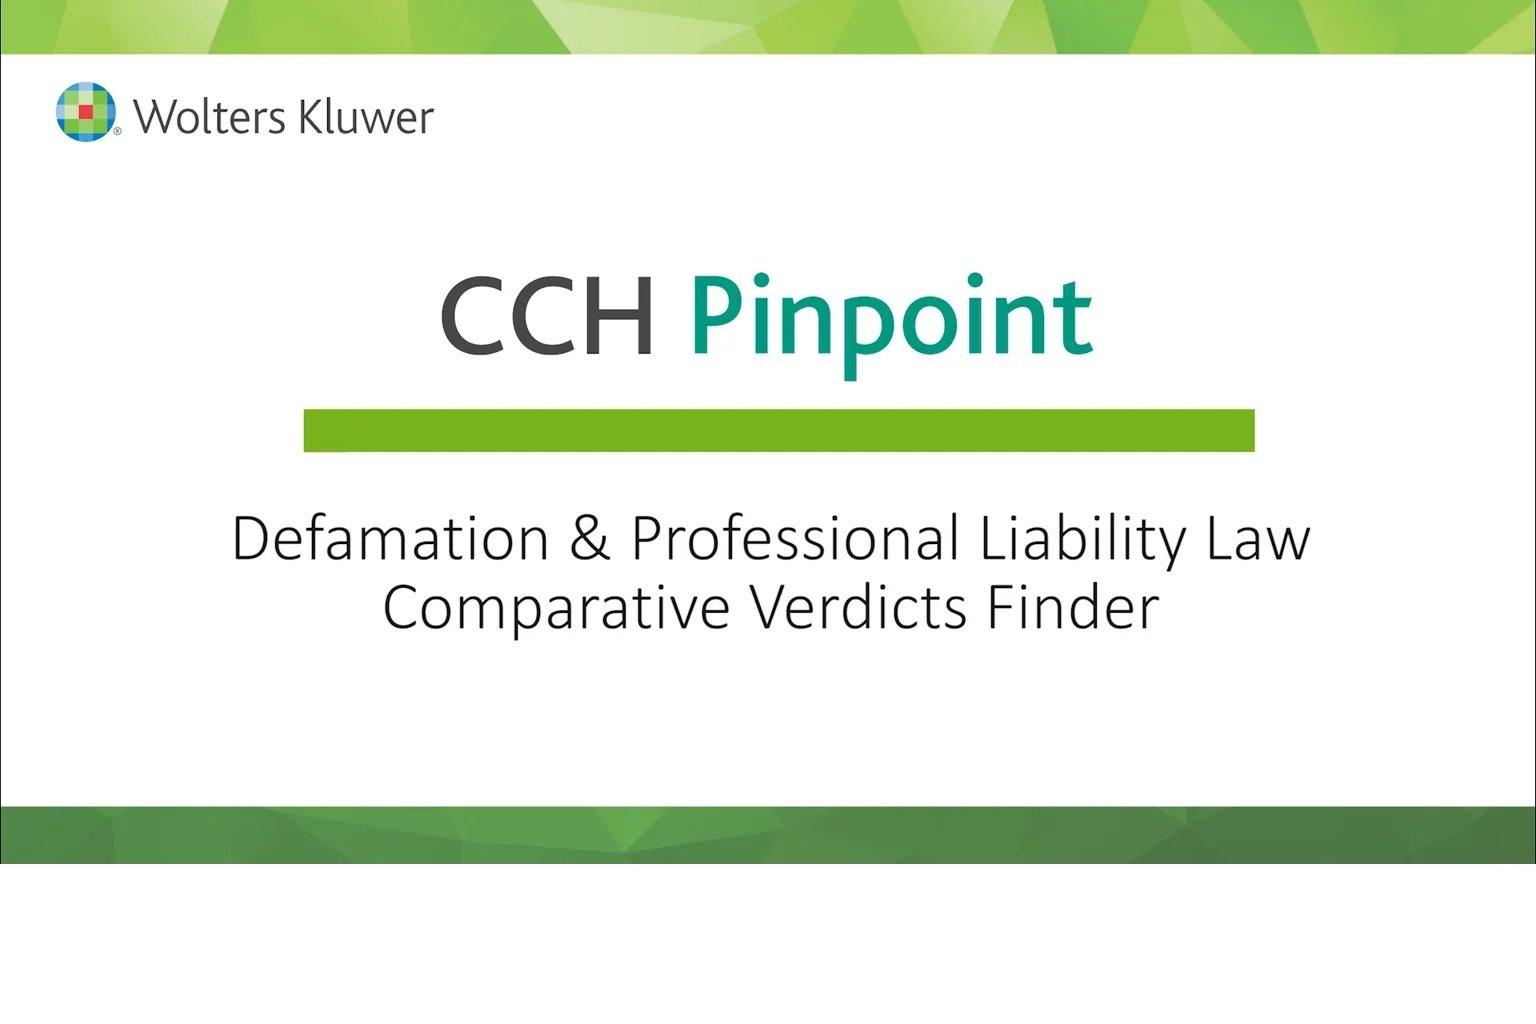 defamation and professional liability law